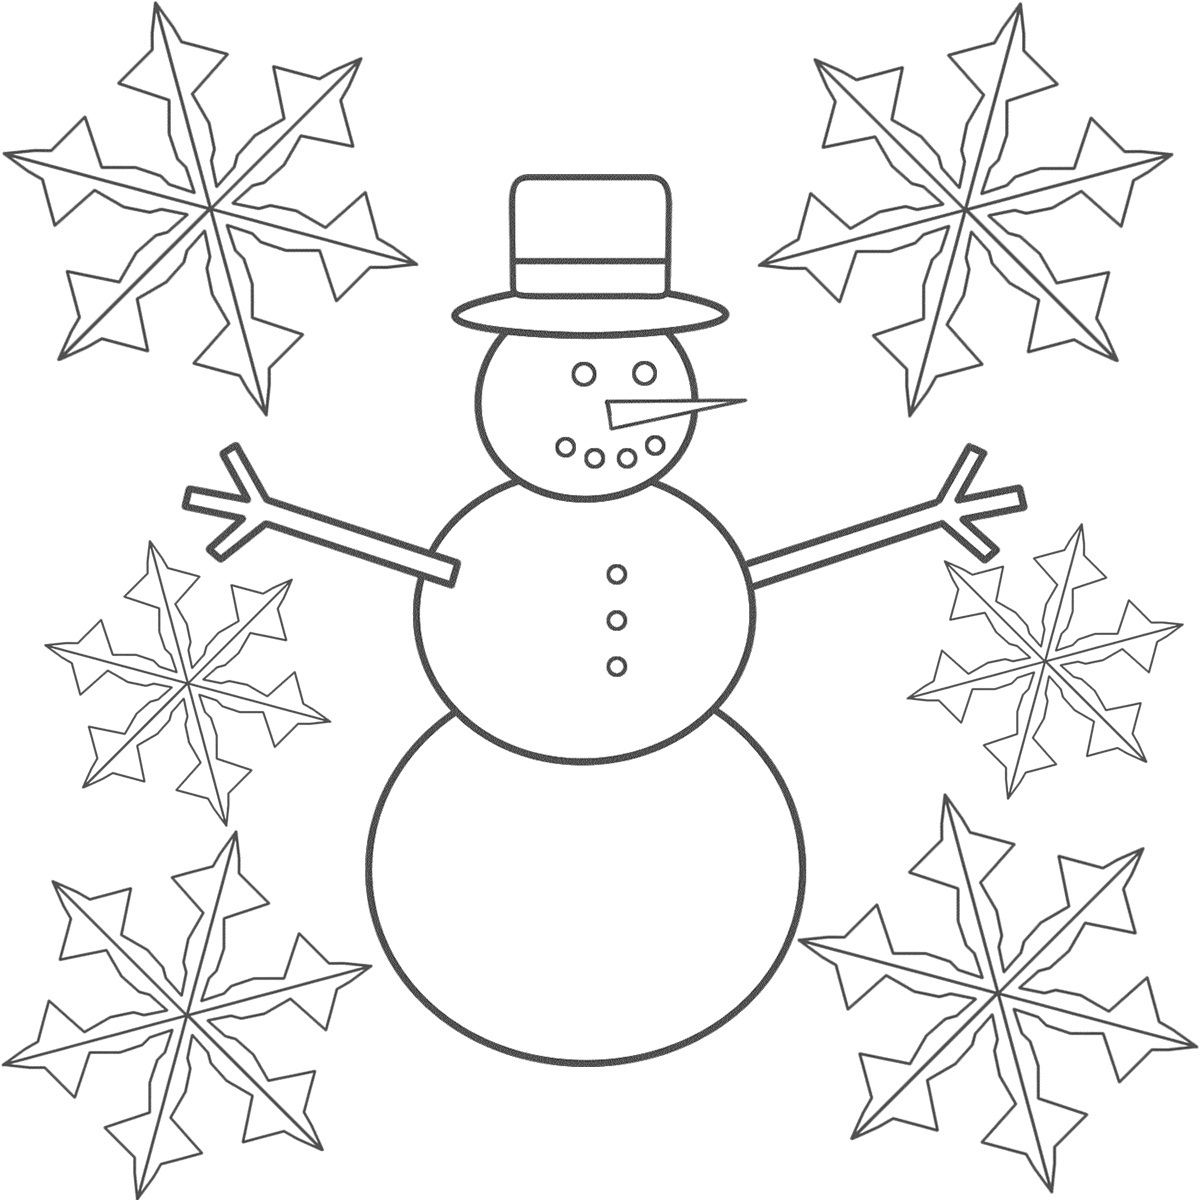 photo about Snowflakes Printable identify No cost Printable Snowflake Coloring Web pages For Children